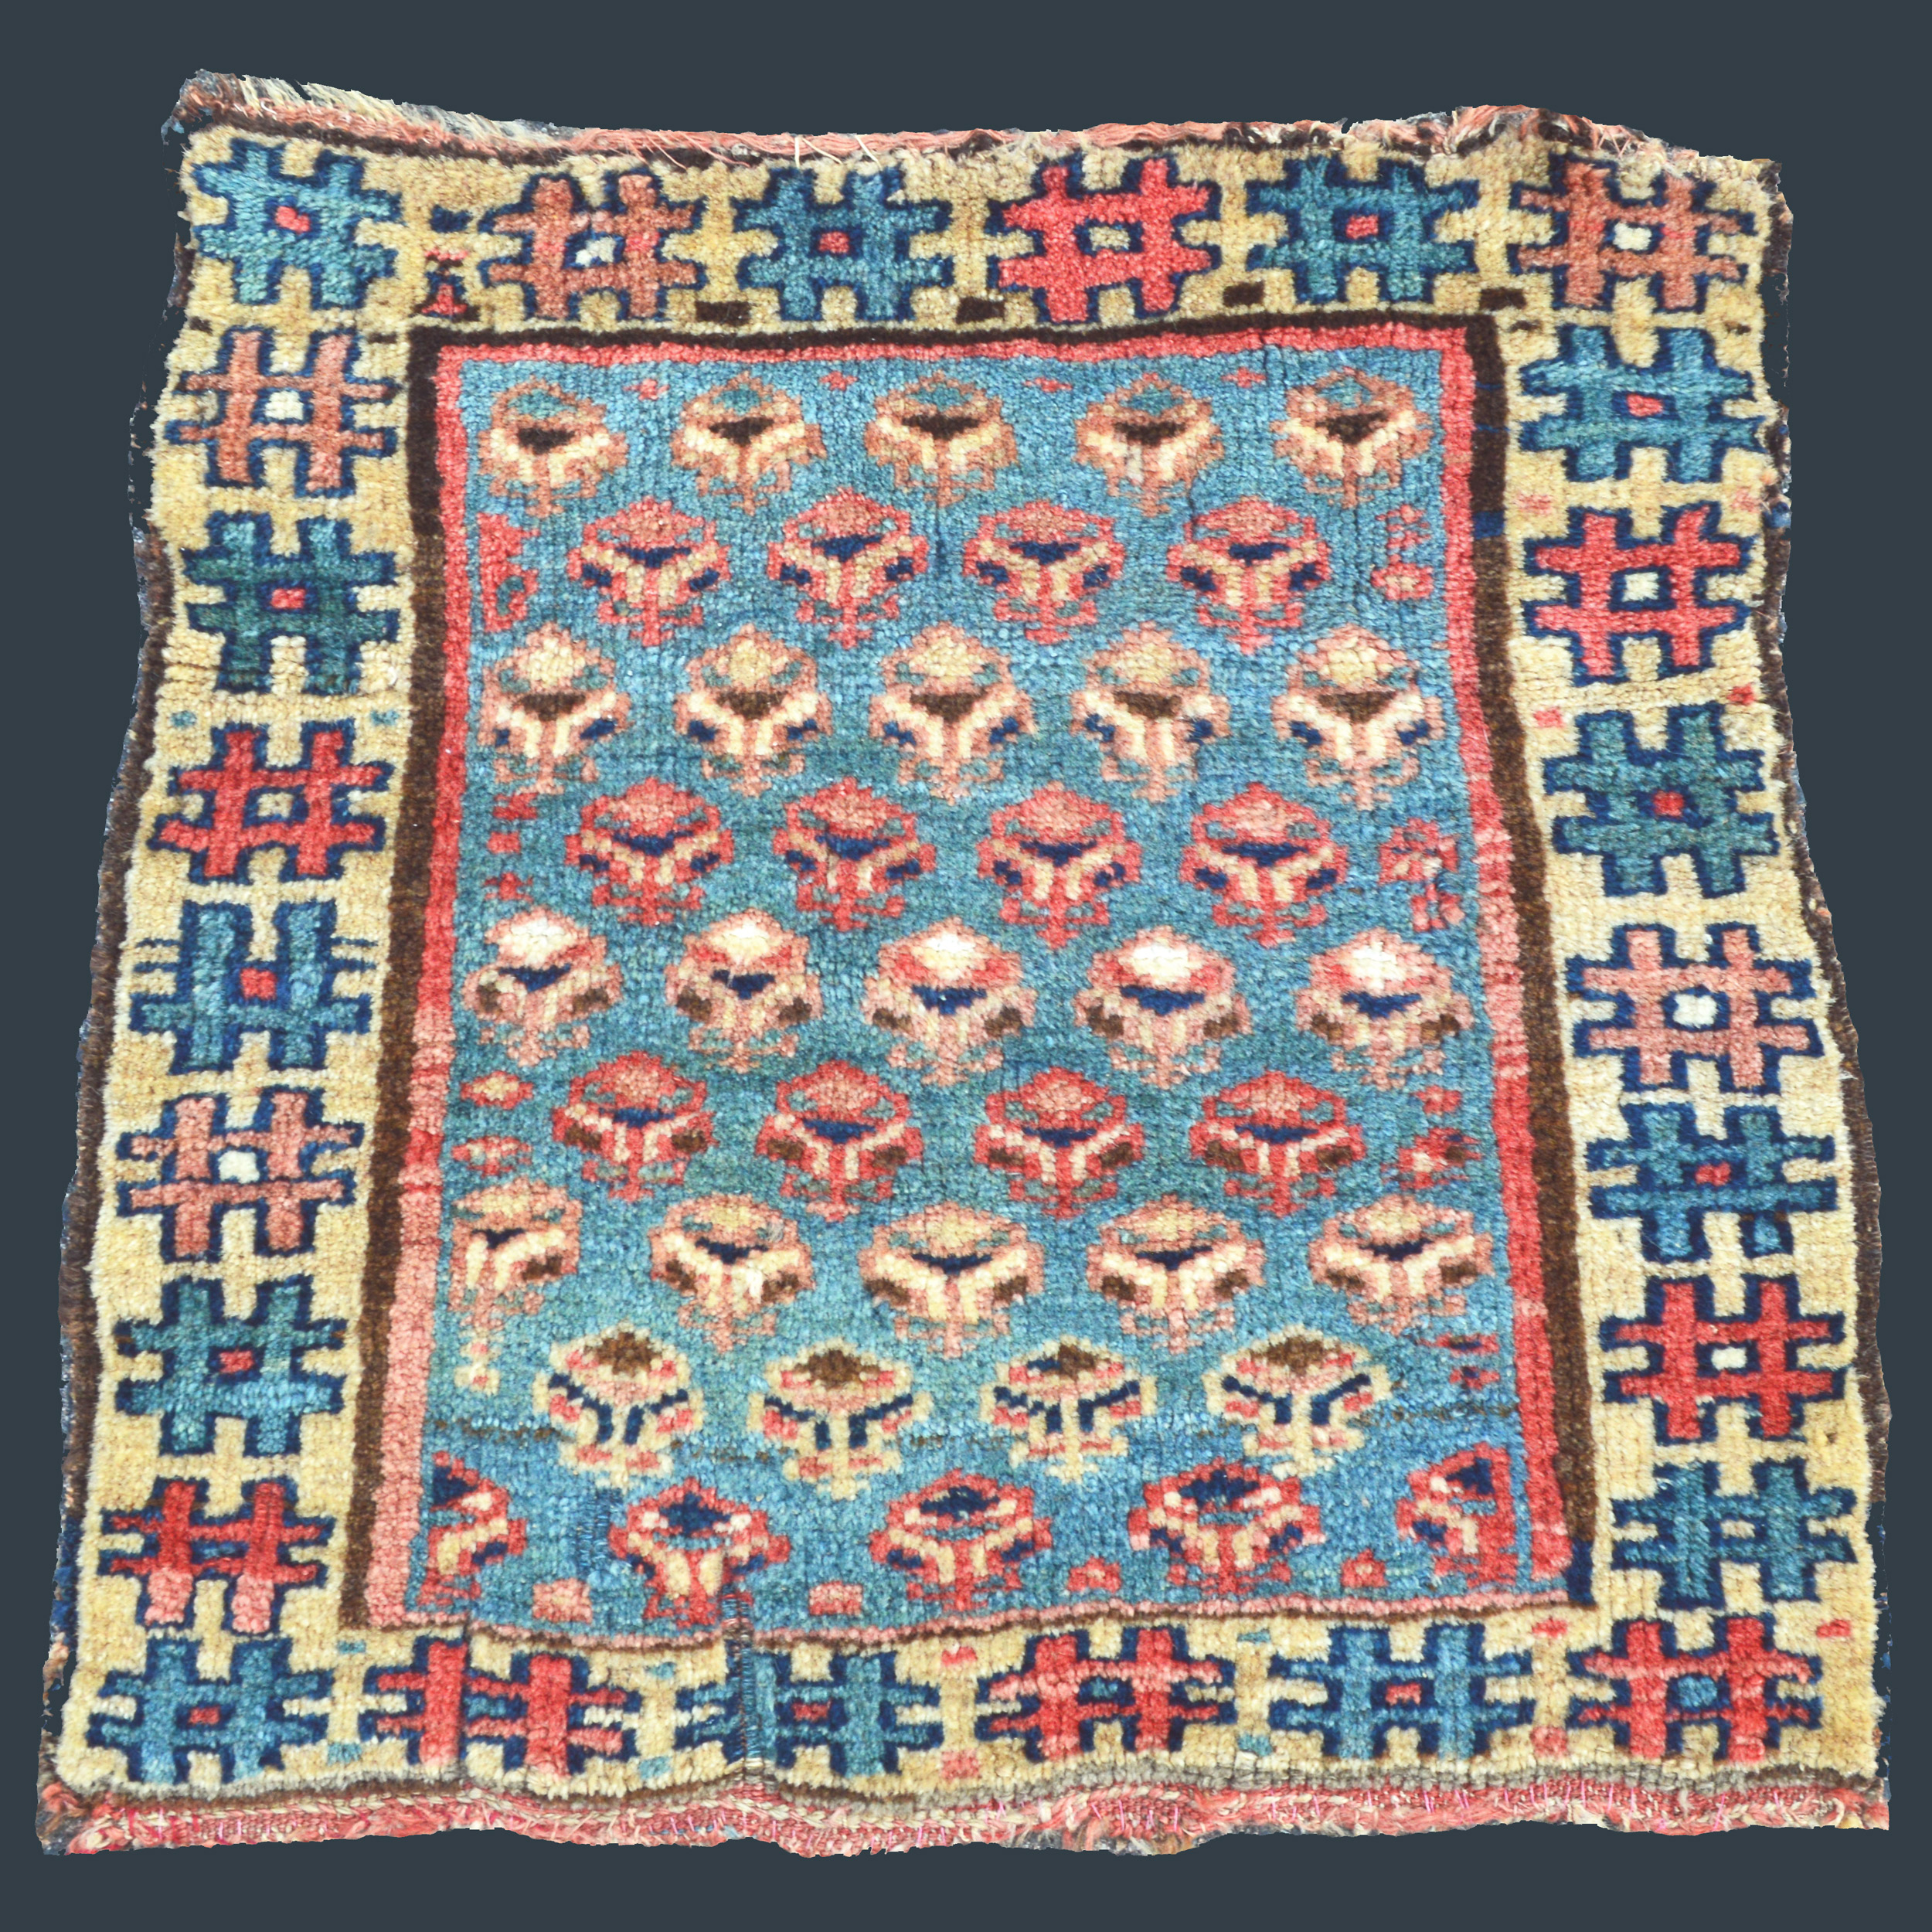 Antique northwest Persian Kurdish bag face with rows of flowers on an uncommon sky blue field - Douglas Stock Gallery antique Oriental rugs, Boston,MA area